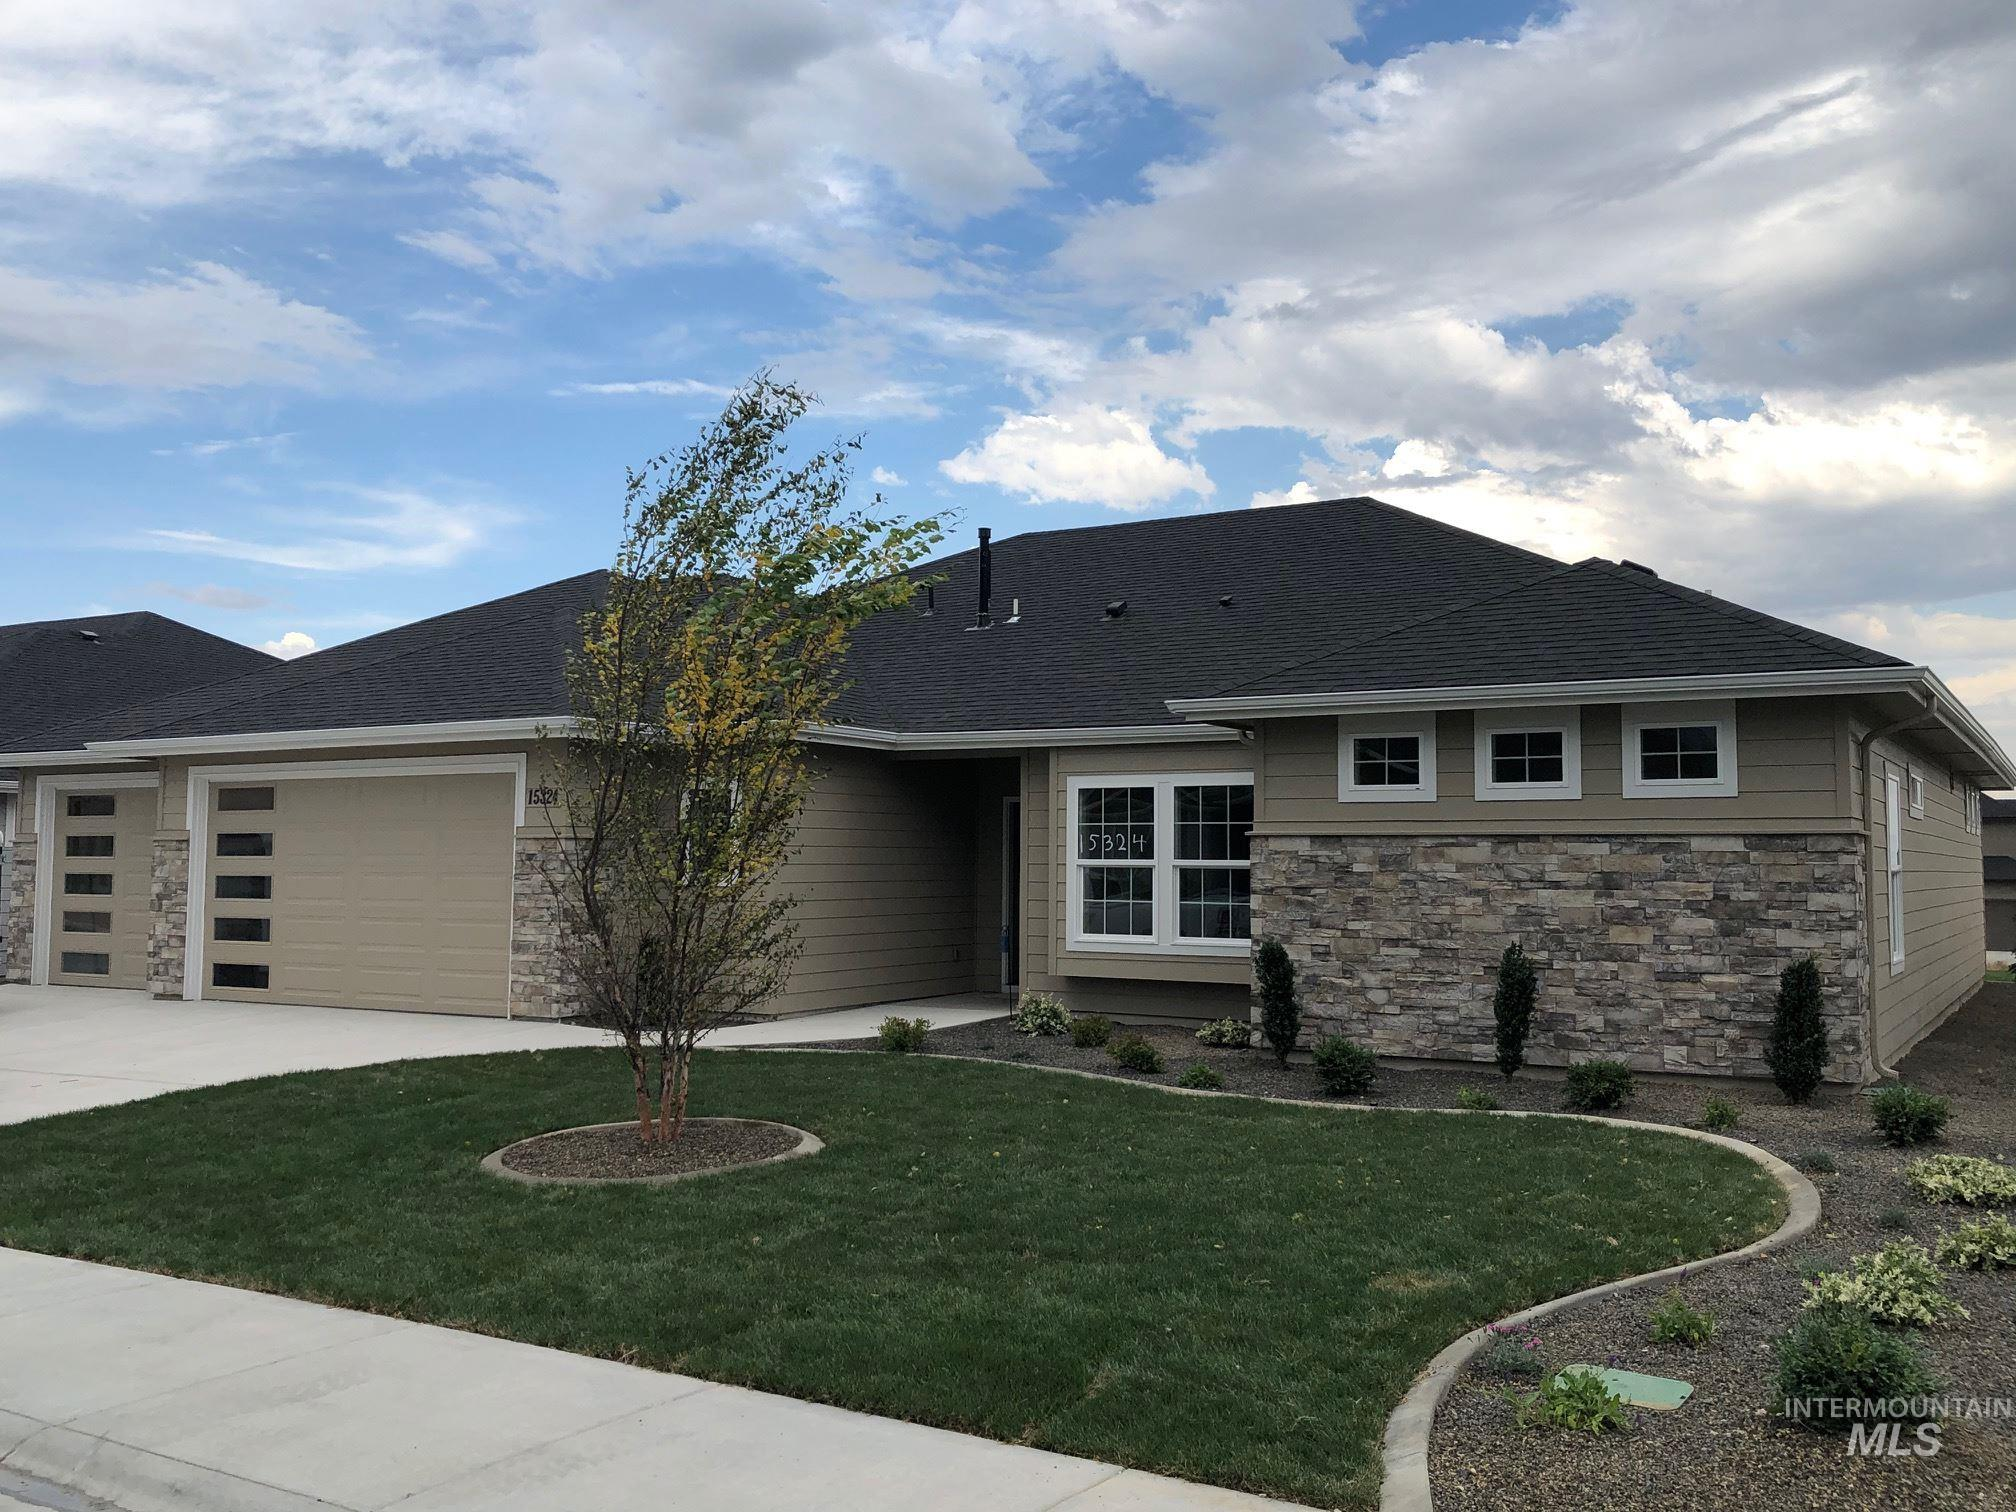 Photo for 15324 Flora Springs Way, Caldwell, ID 83607 (MLS # 98771449)